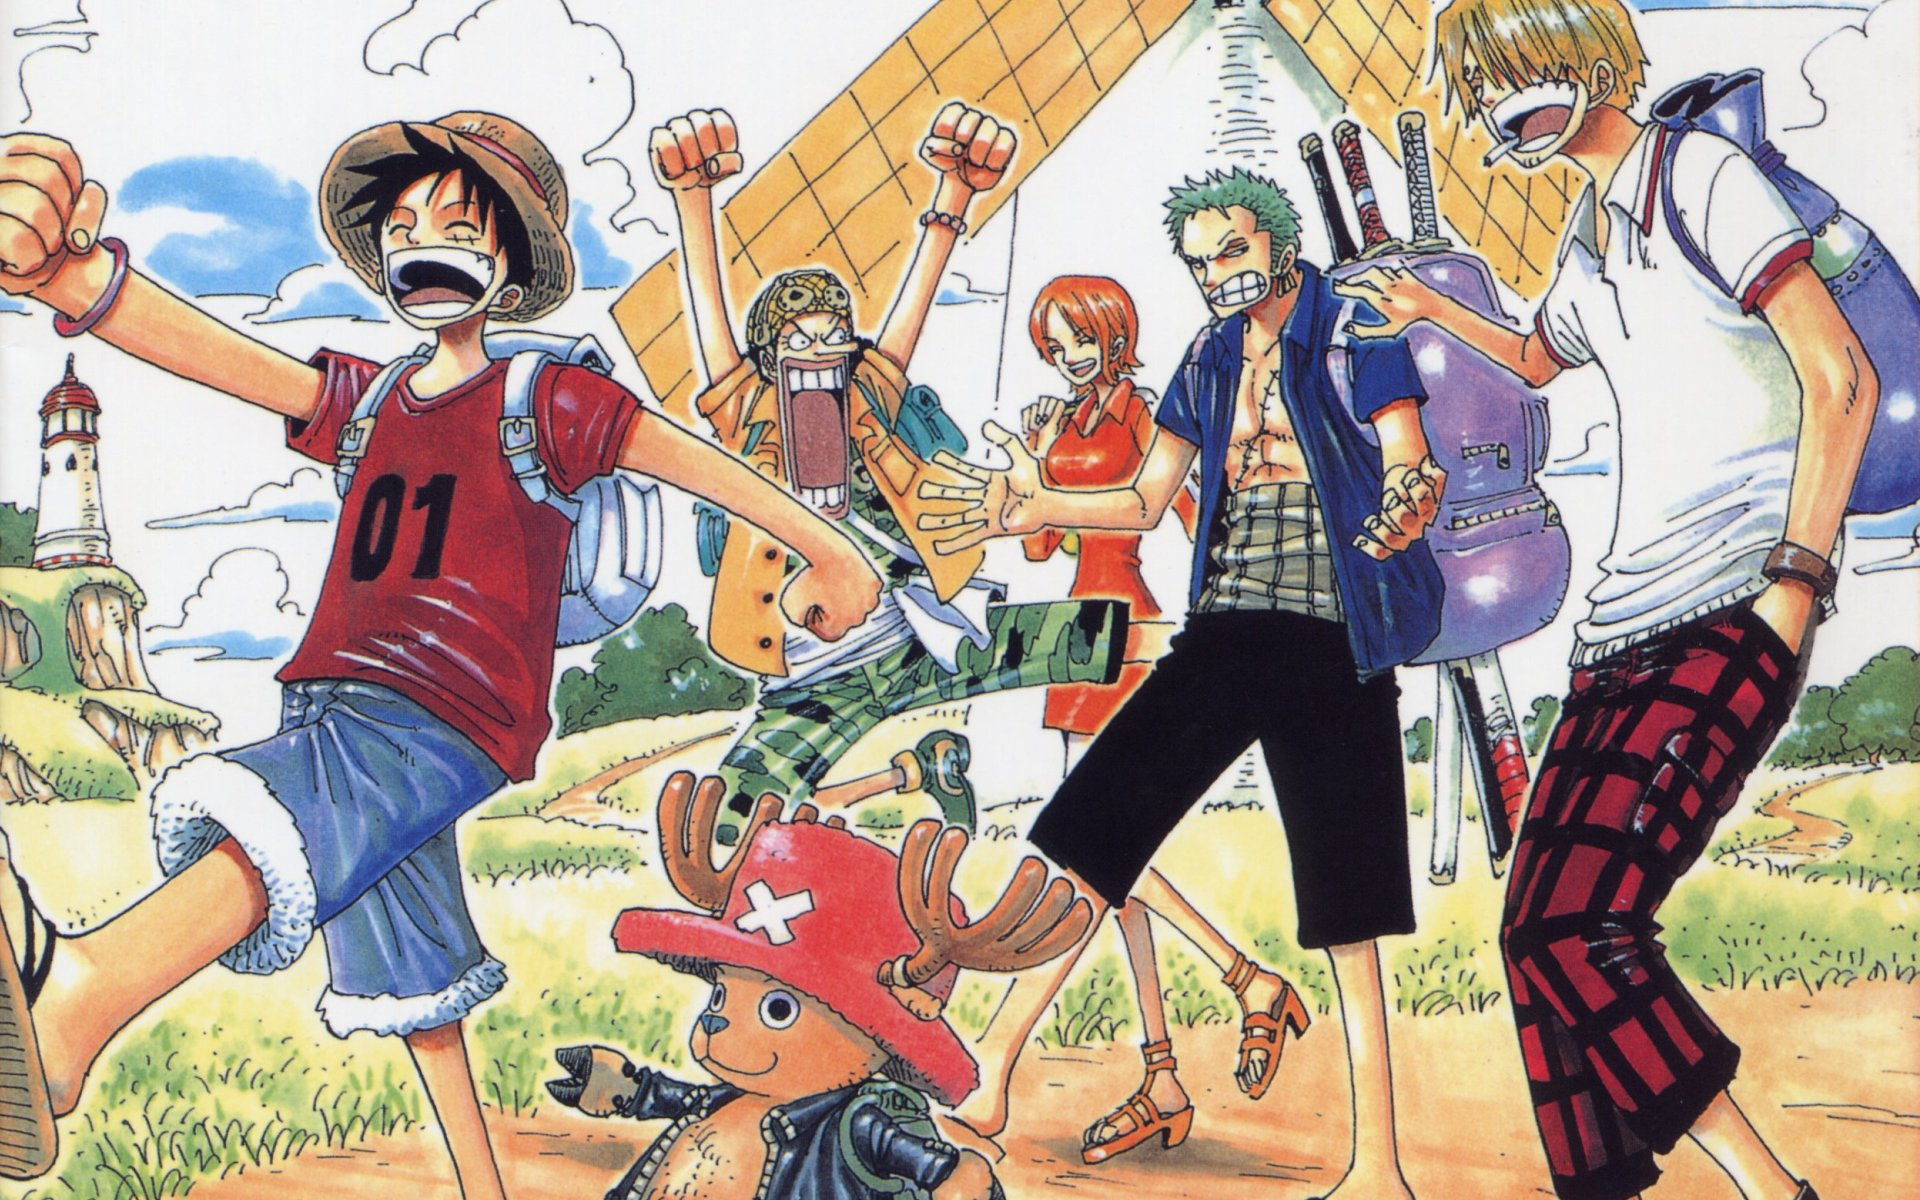 Find over 100+ of the best free one piece images. One Piece Full HD Wallpaper and Background Image ...